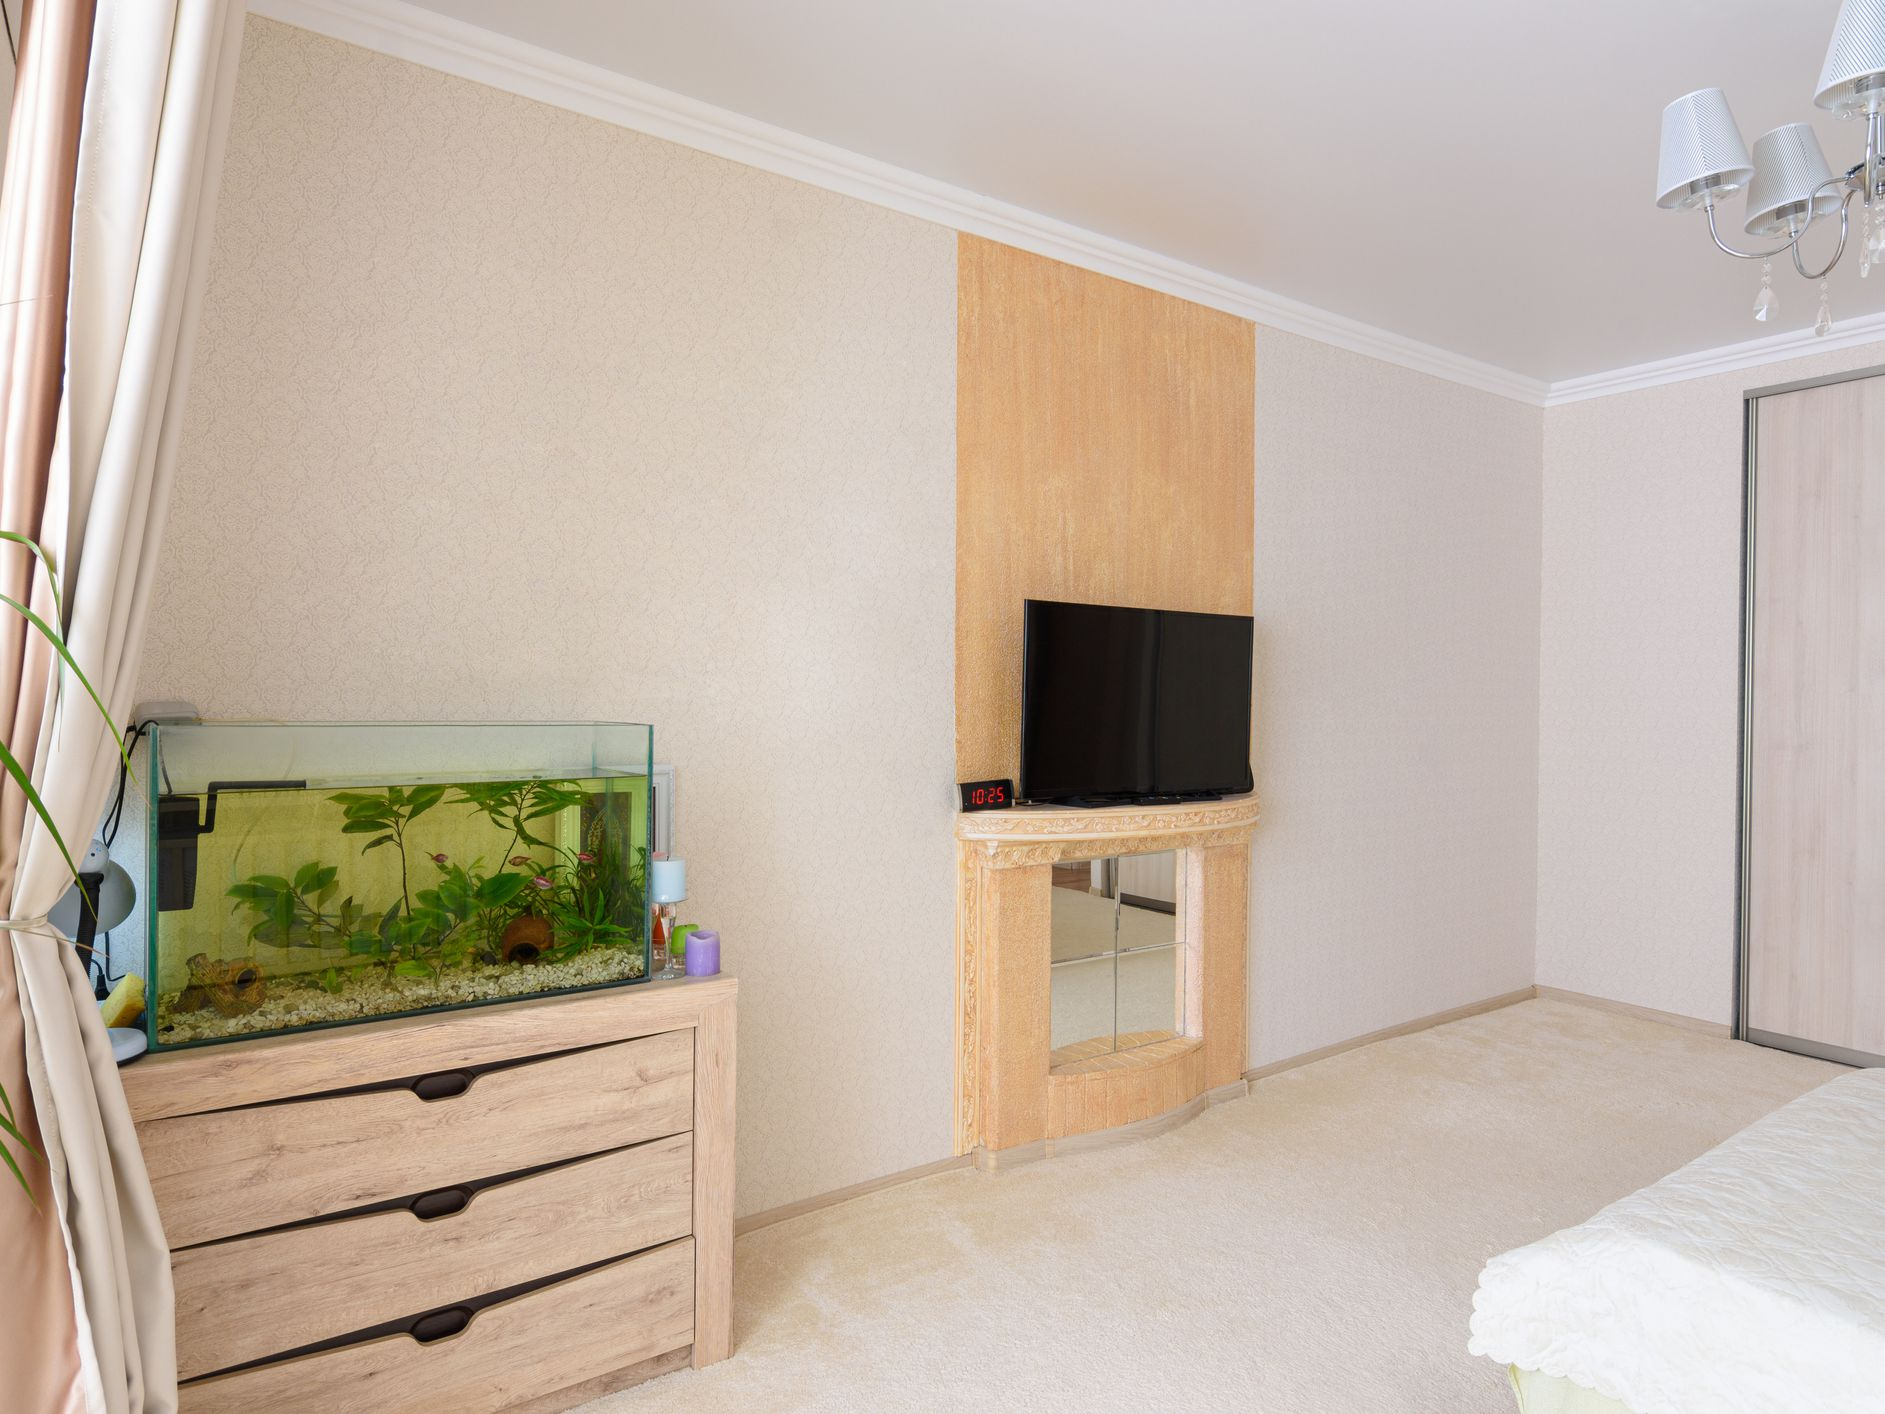 Is A Bedroom Aquarium Bad Feng Shui